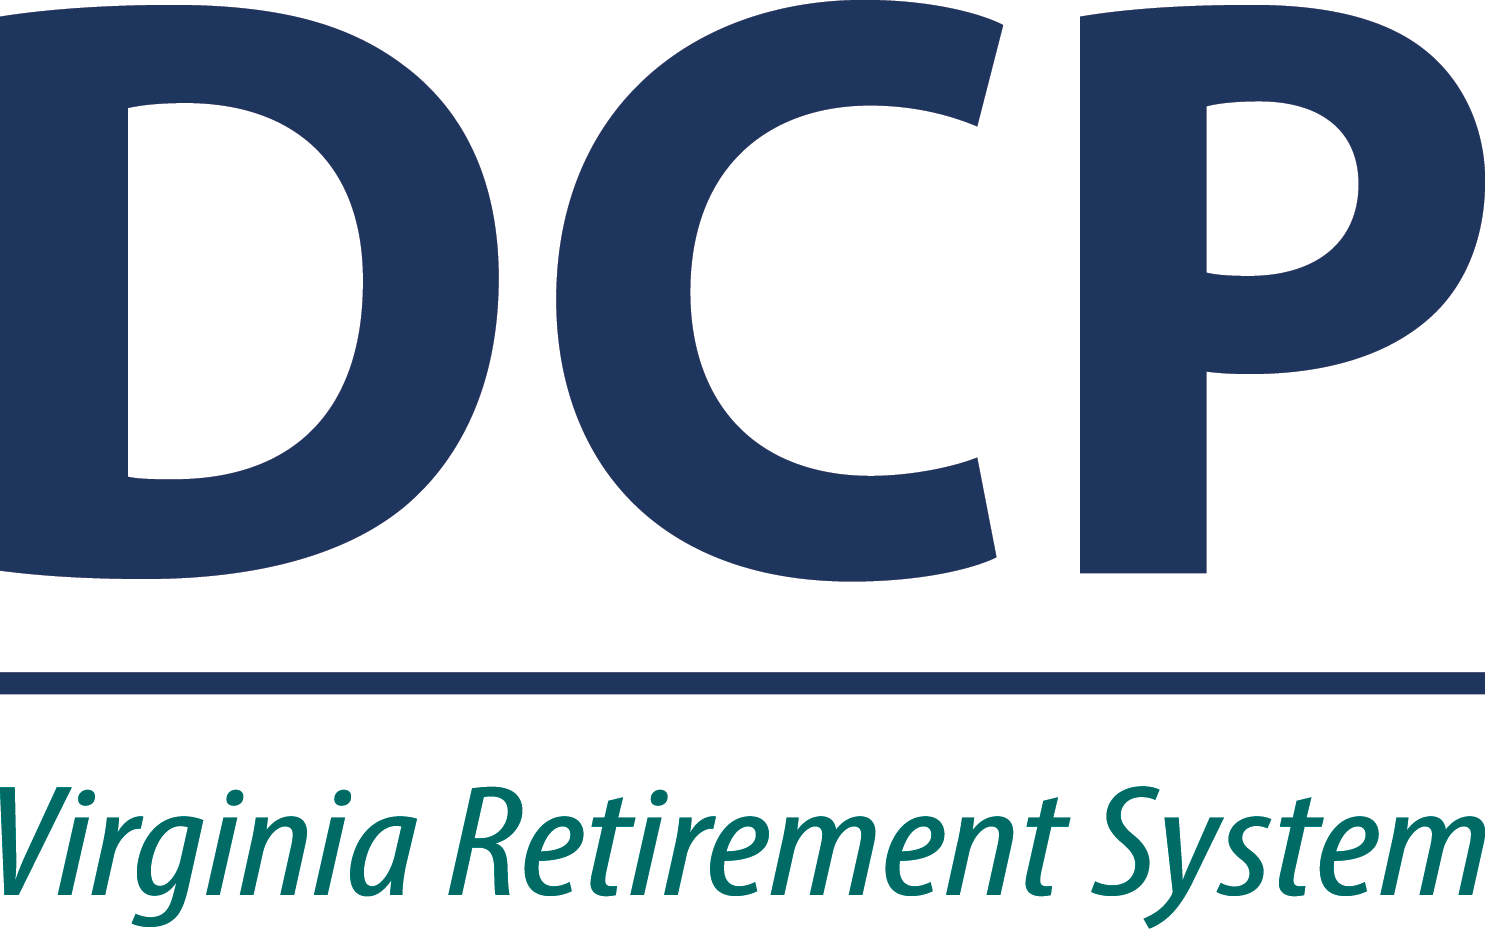 Defined Contribution Plans - Virginia Retirement System